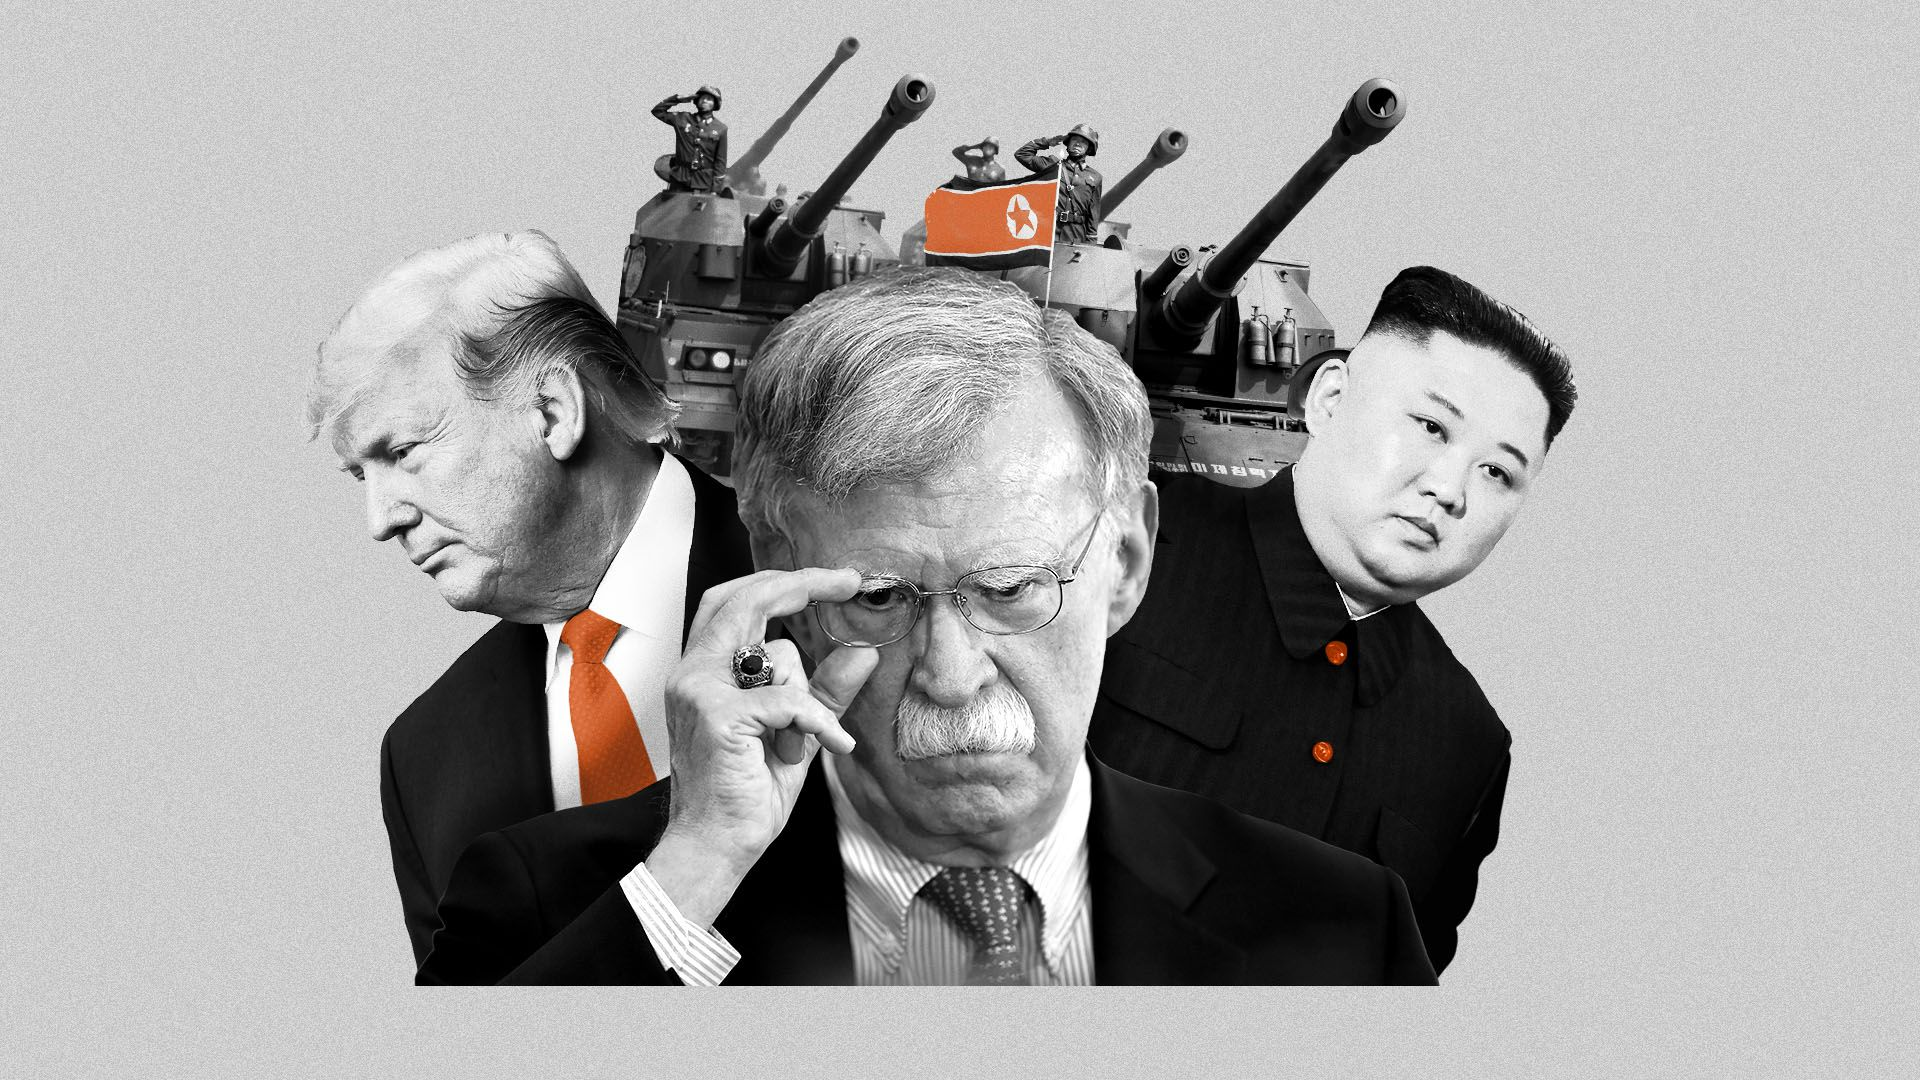 Exclusive: John Bolton hits Trump for bluffing on North Korea nuclear policy